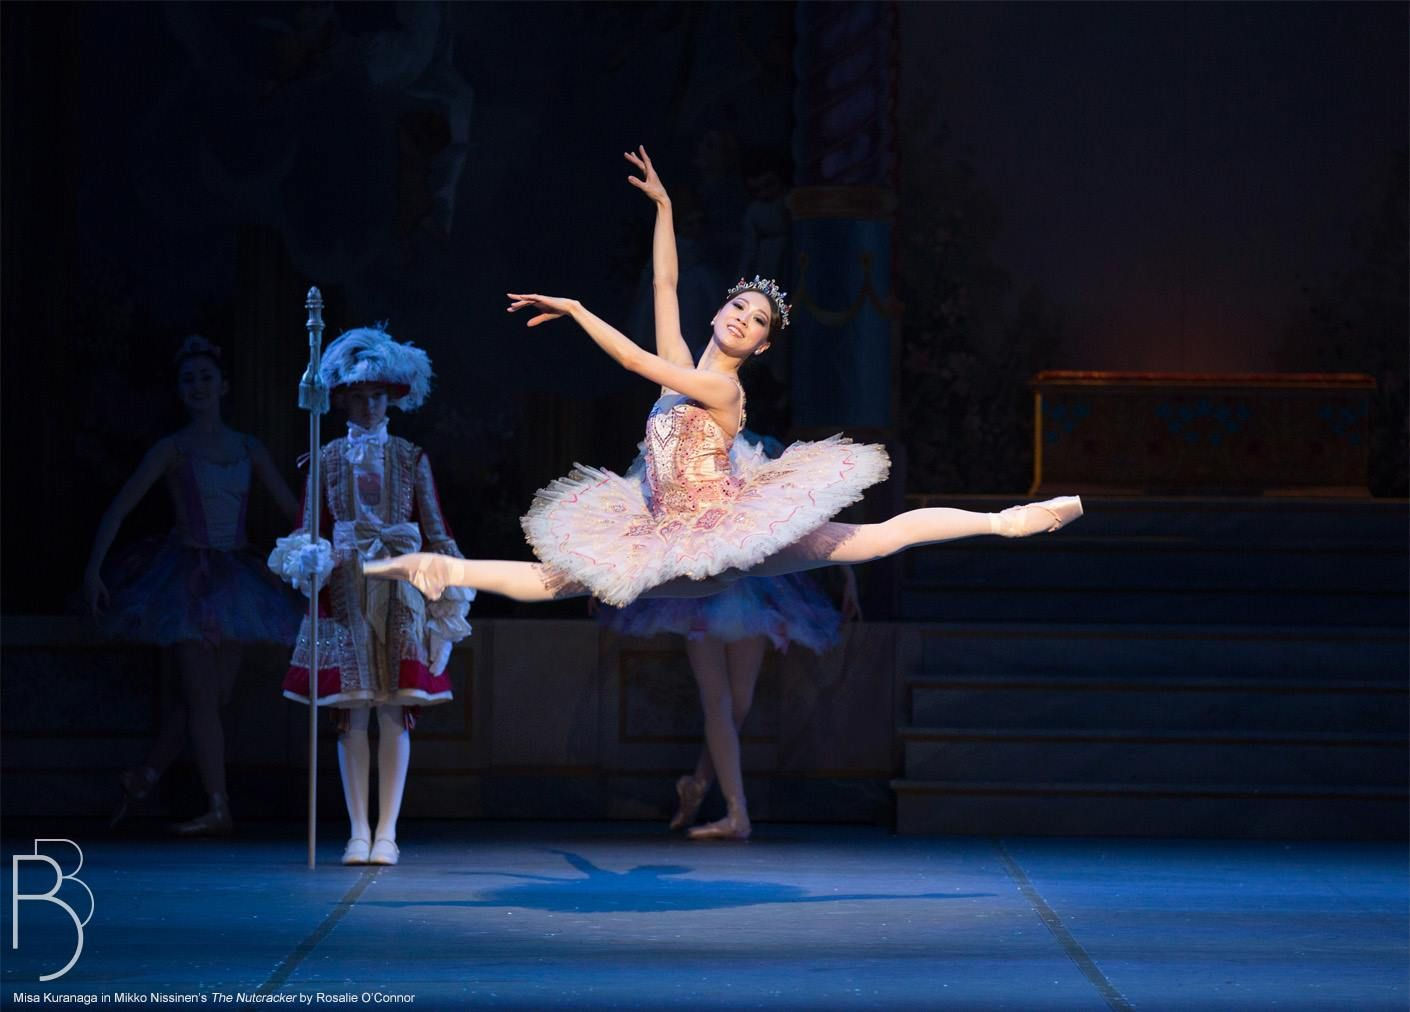 Boston Ballet Principal Dancer Misa Kuranaga In The Nutcracker